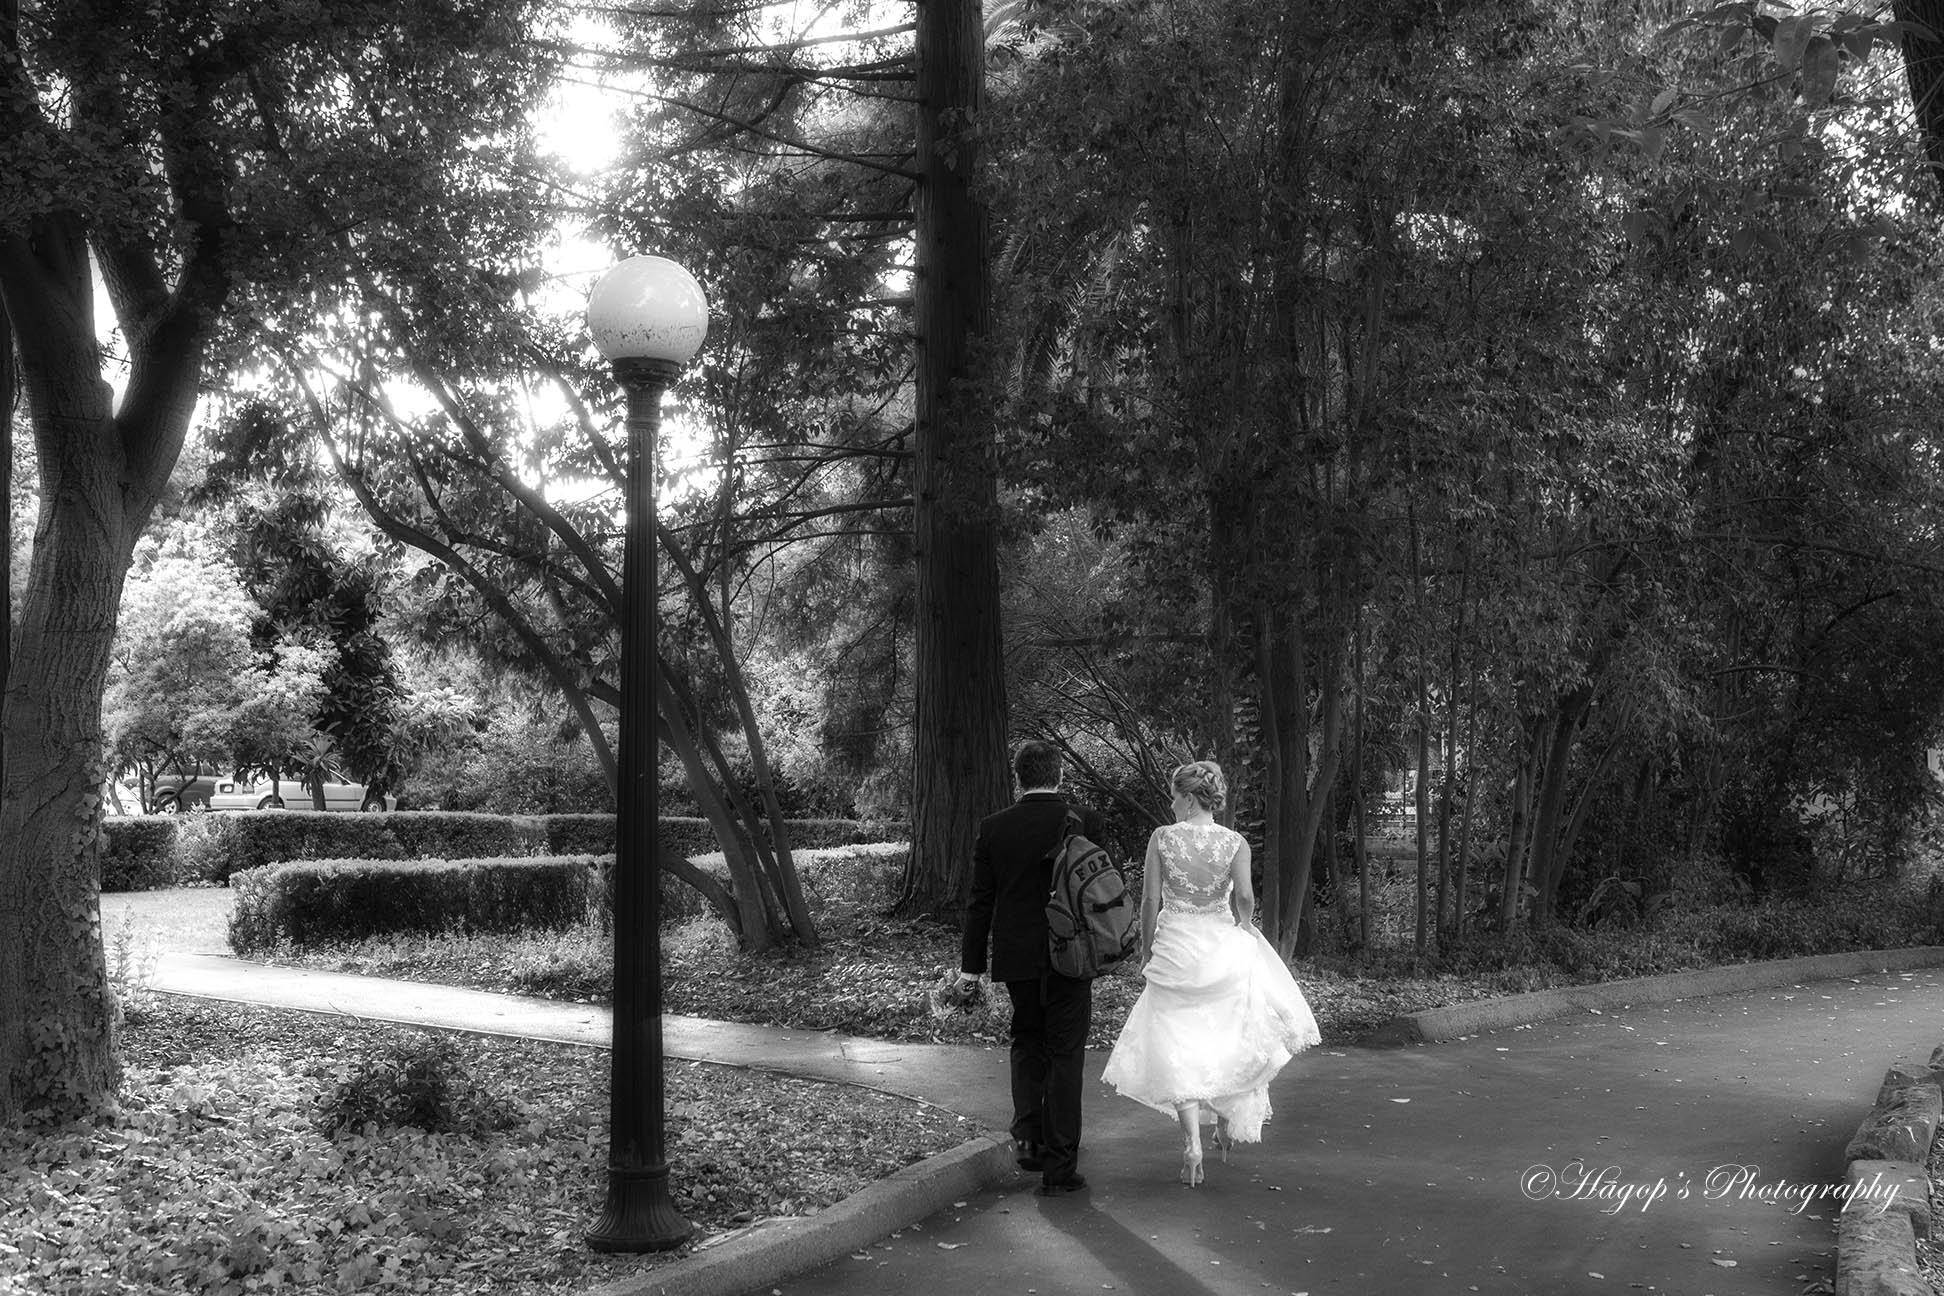 photojournalistic bw wedding photo of the bride and groom taken from their backs